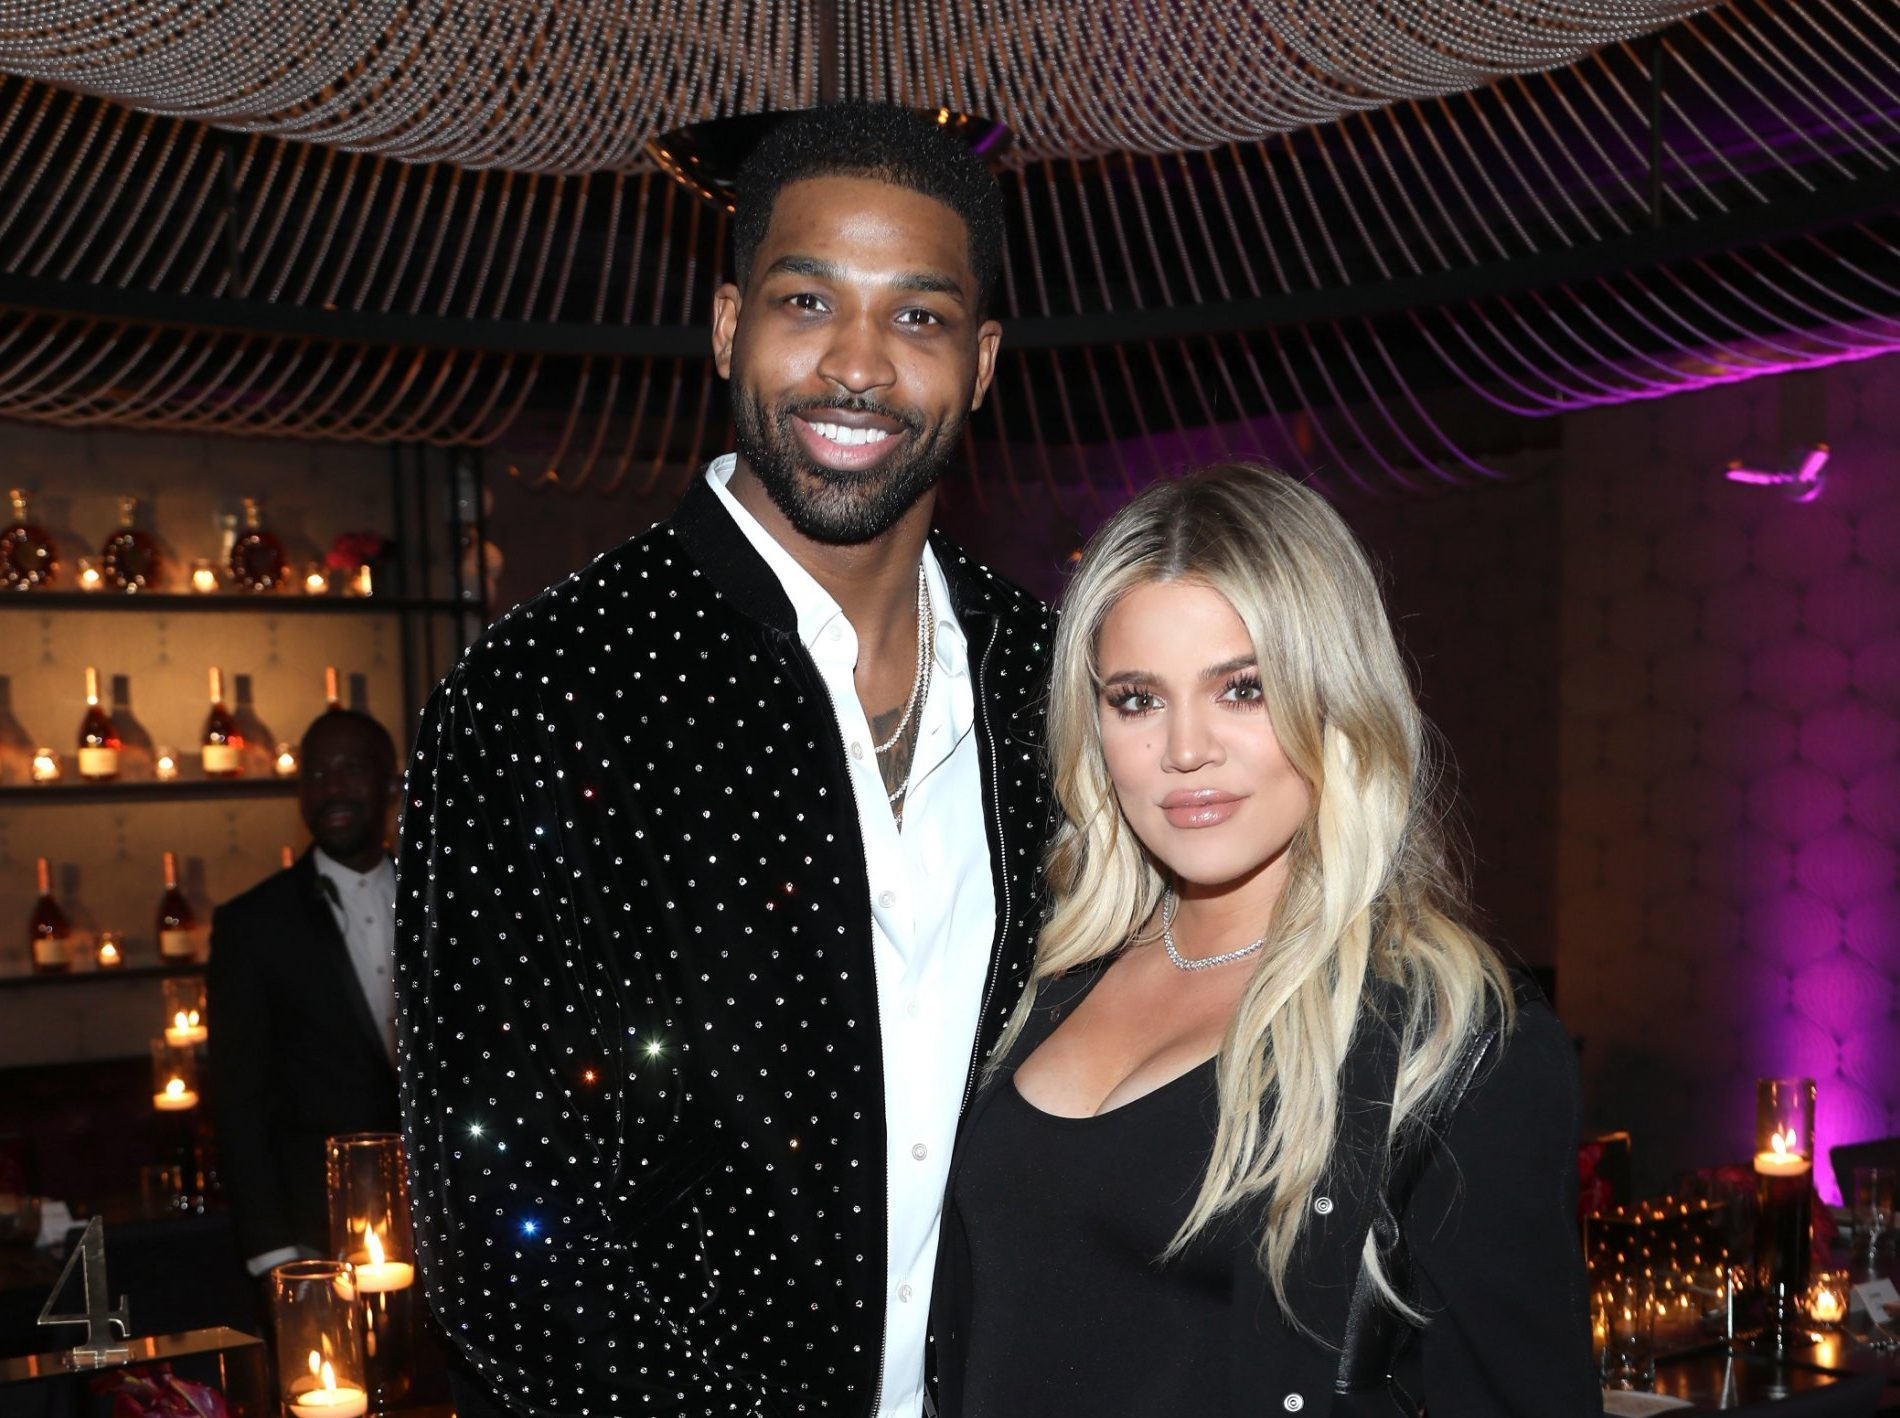 Tristan Thompson isn't 'overthinking' Khloe Karadshian's cryptic Instagram messages